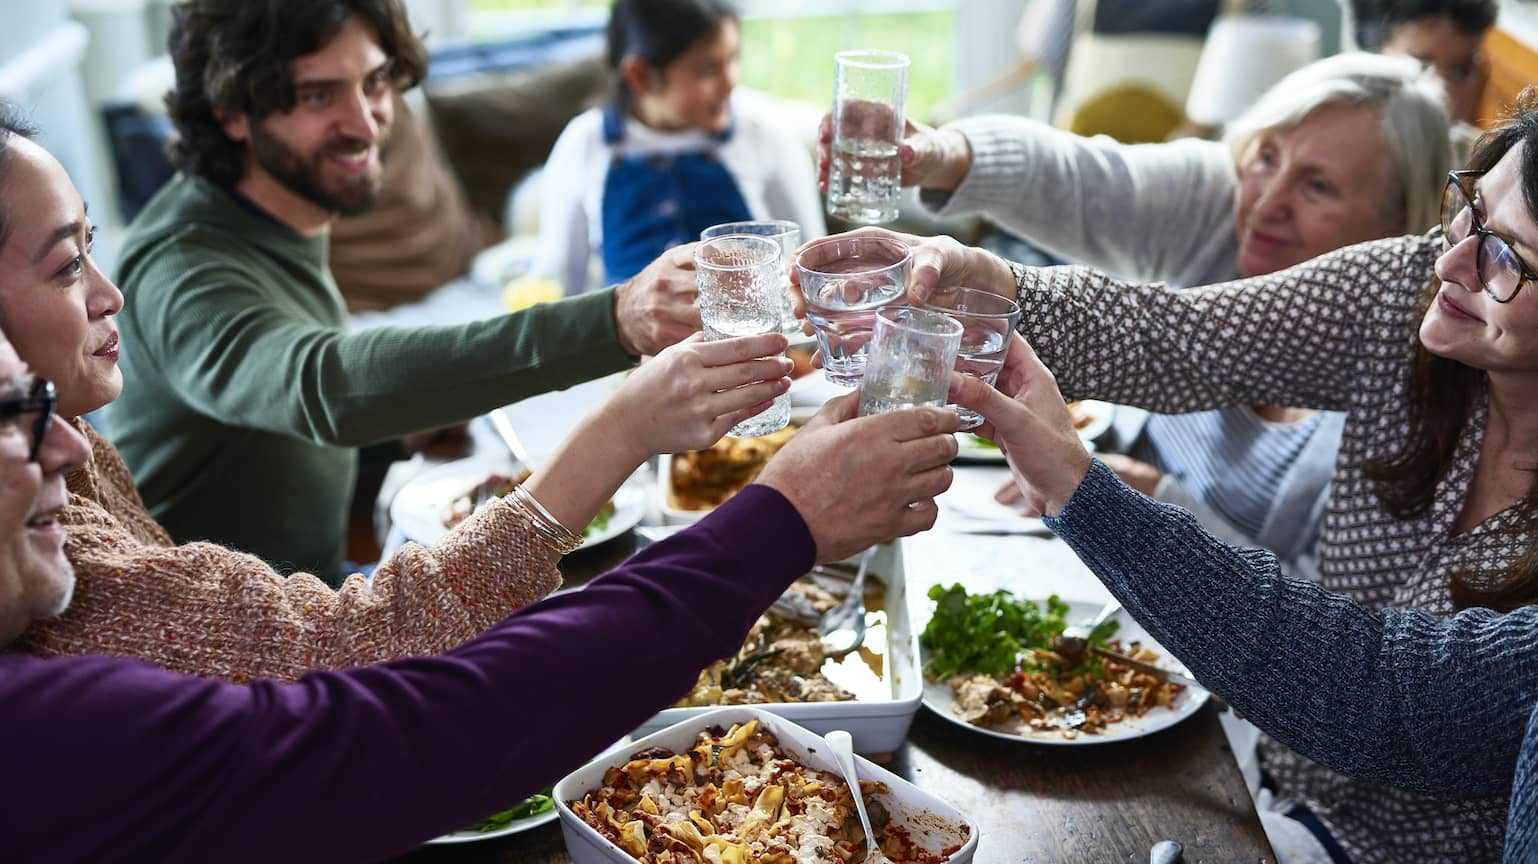 Family holding up water glasses to toast over a large meal.